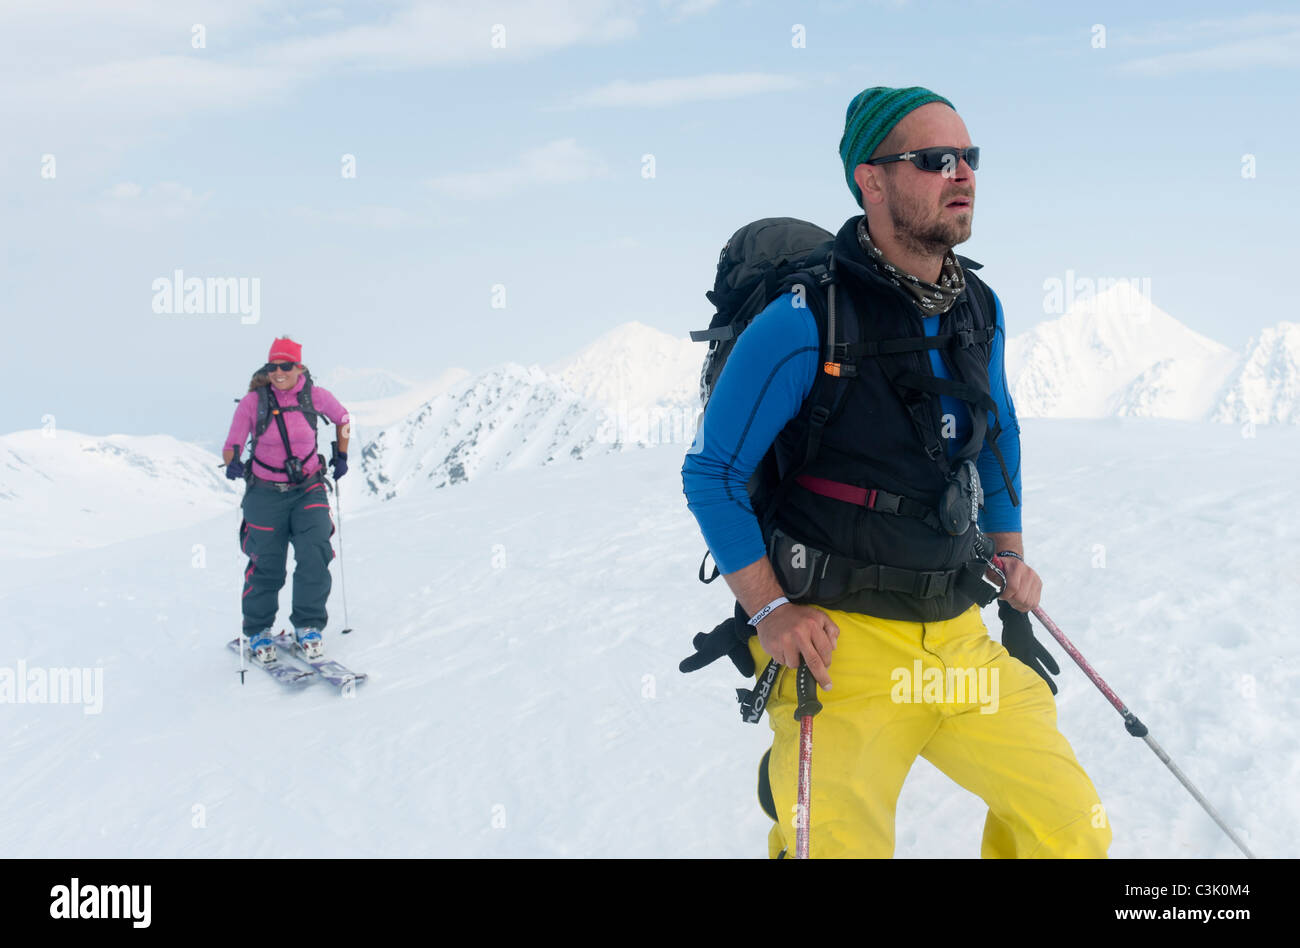 A couple ski-touring in the Lyngen Alps, northern Norway Stock Photo